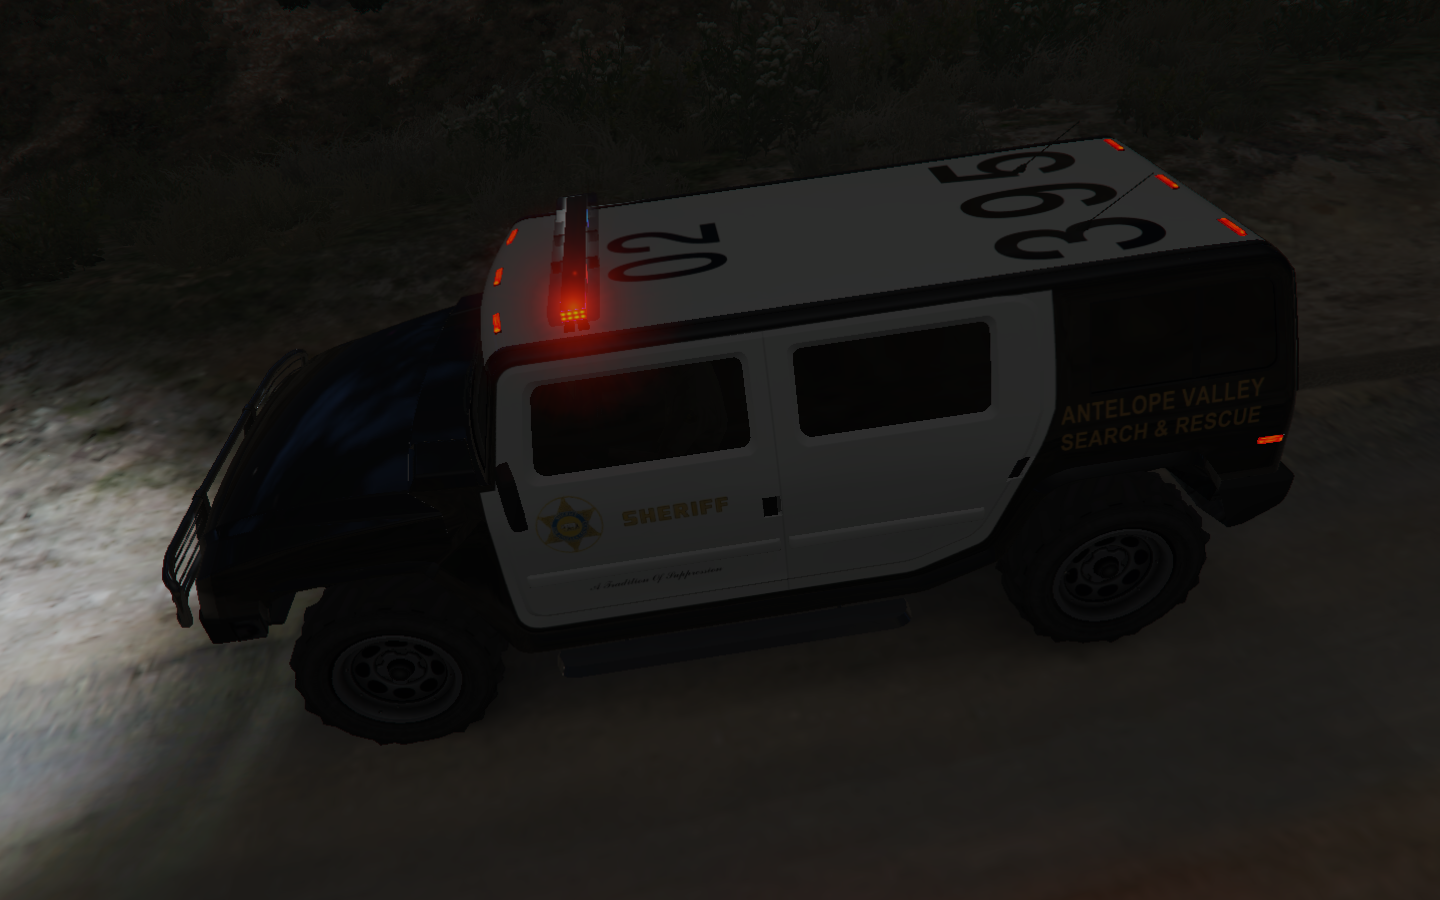 Page 97 likewise Lasd Antelope Valley Search And Rescue together with Lasd Antelope Valley Search And Rescue together with Insurgent Civilian Edition Add On together with Grand Theft Auto Online Best Cars To Steal. on mammoth patriot 2 gta 5